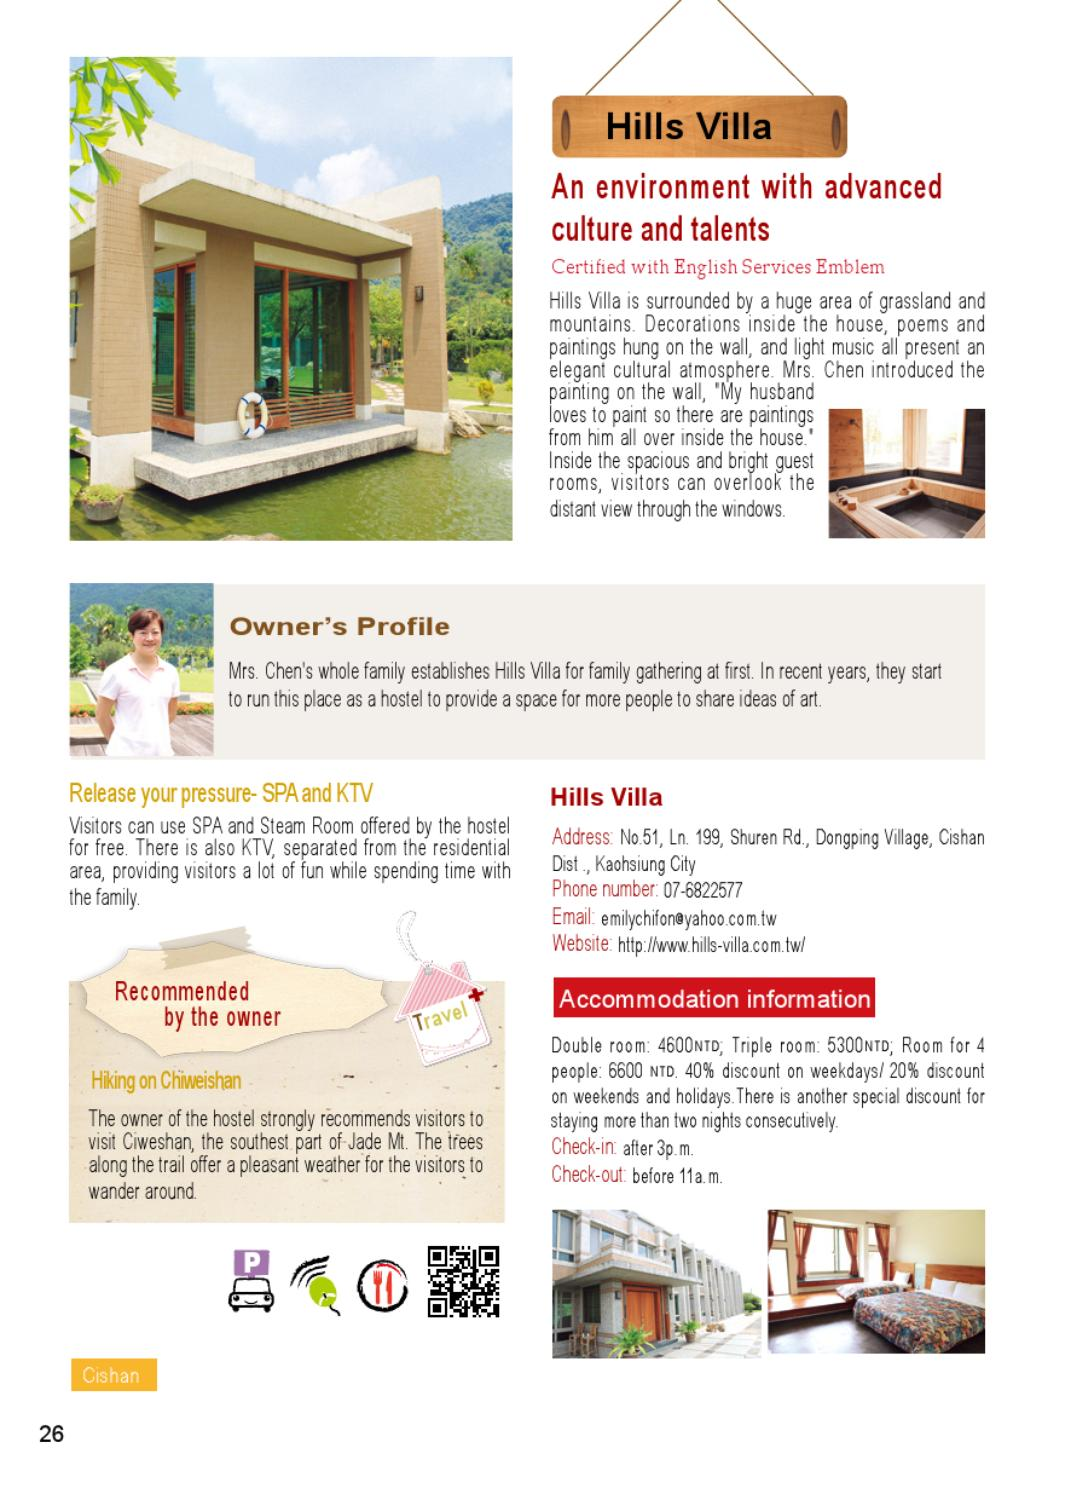 Hospitable Homestay-Kaohsiung Travel Guide by 孝 林 - issuu